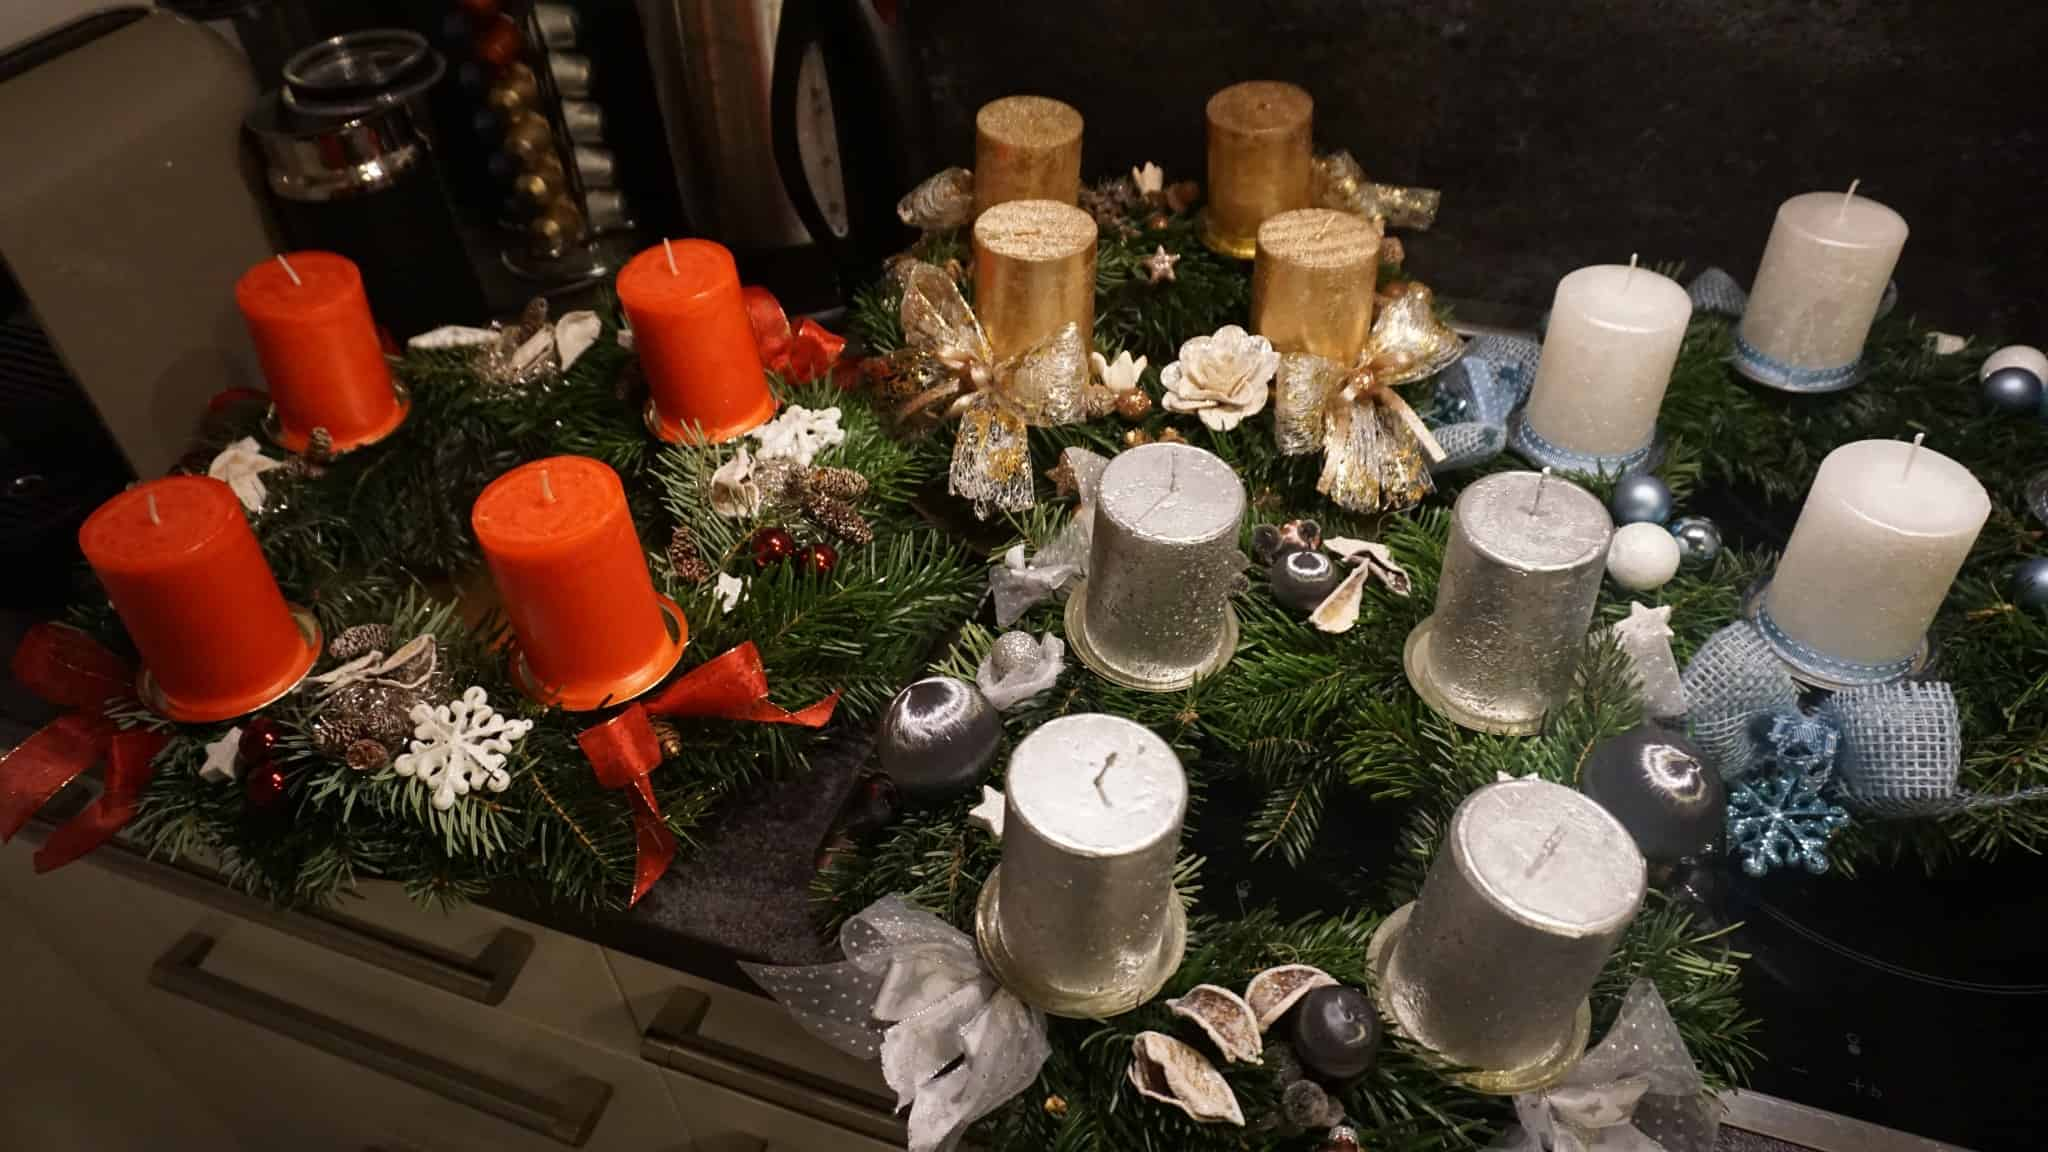 adventkranzbinden13